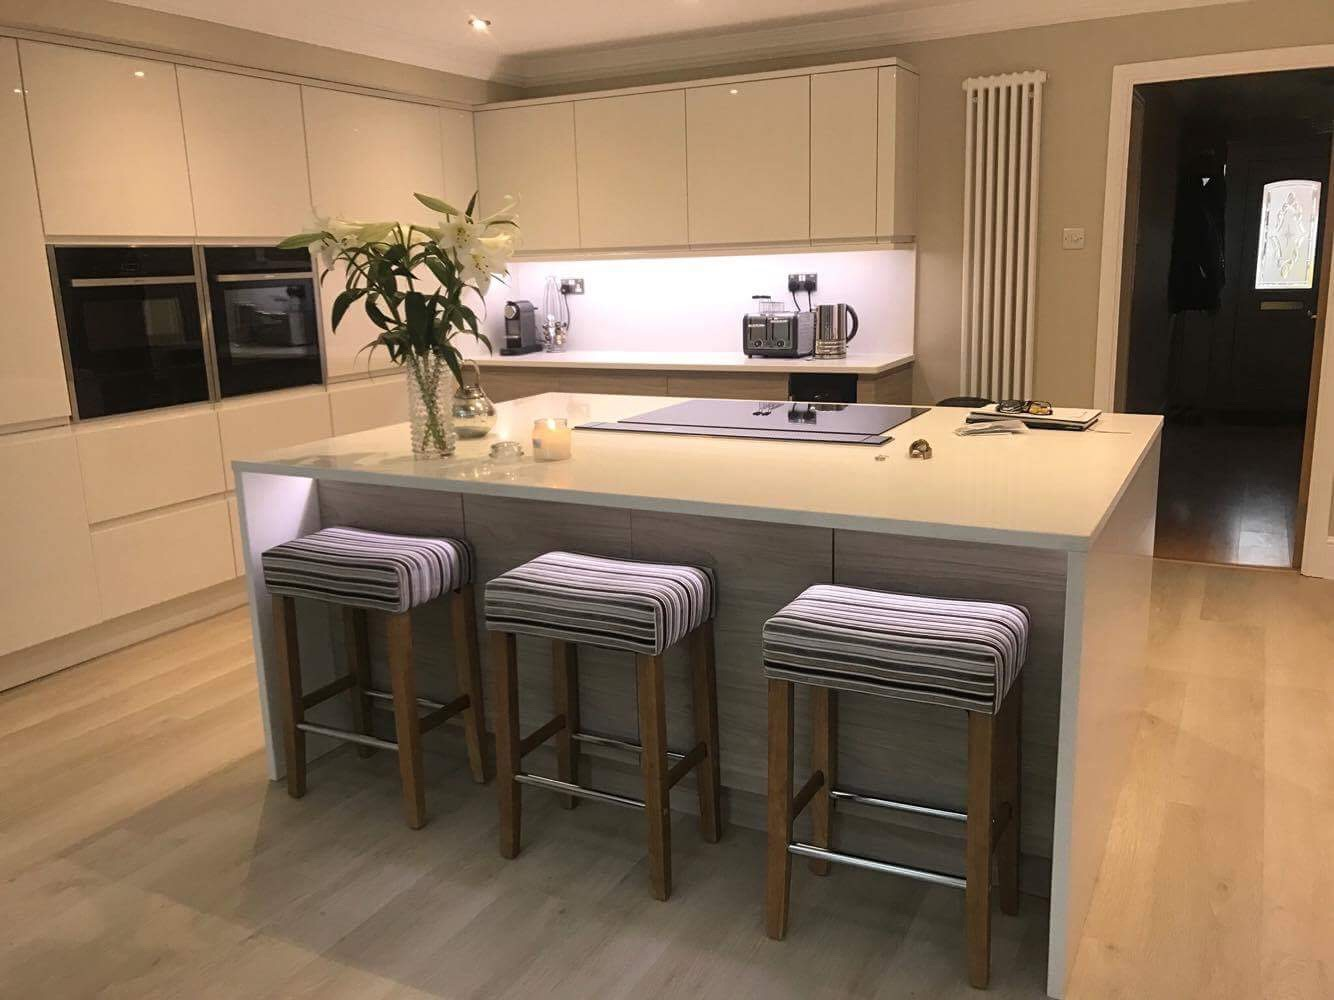 project 5 t and s bespoke kitchens